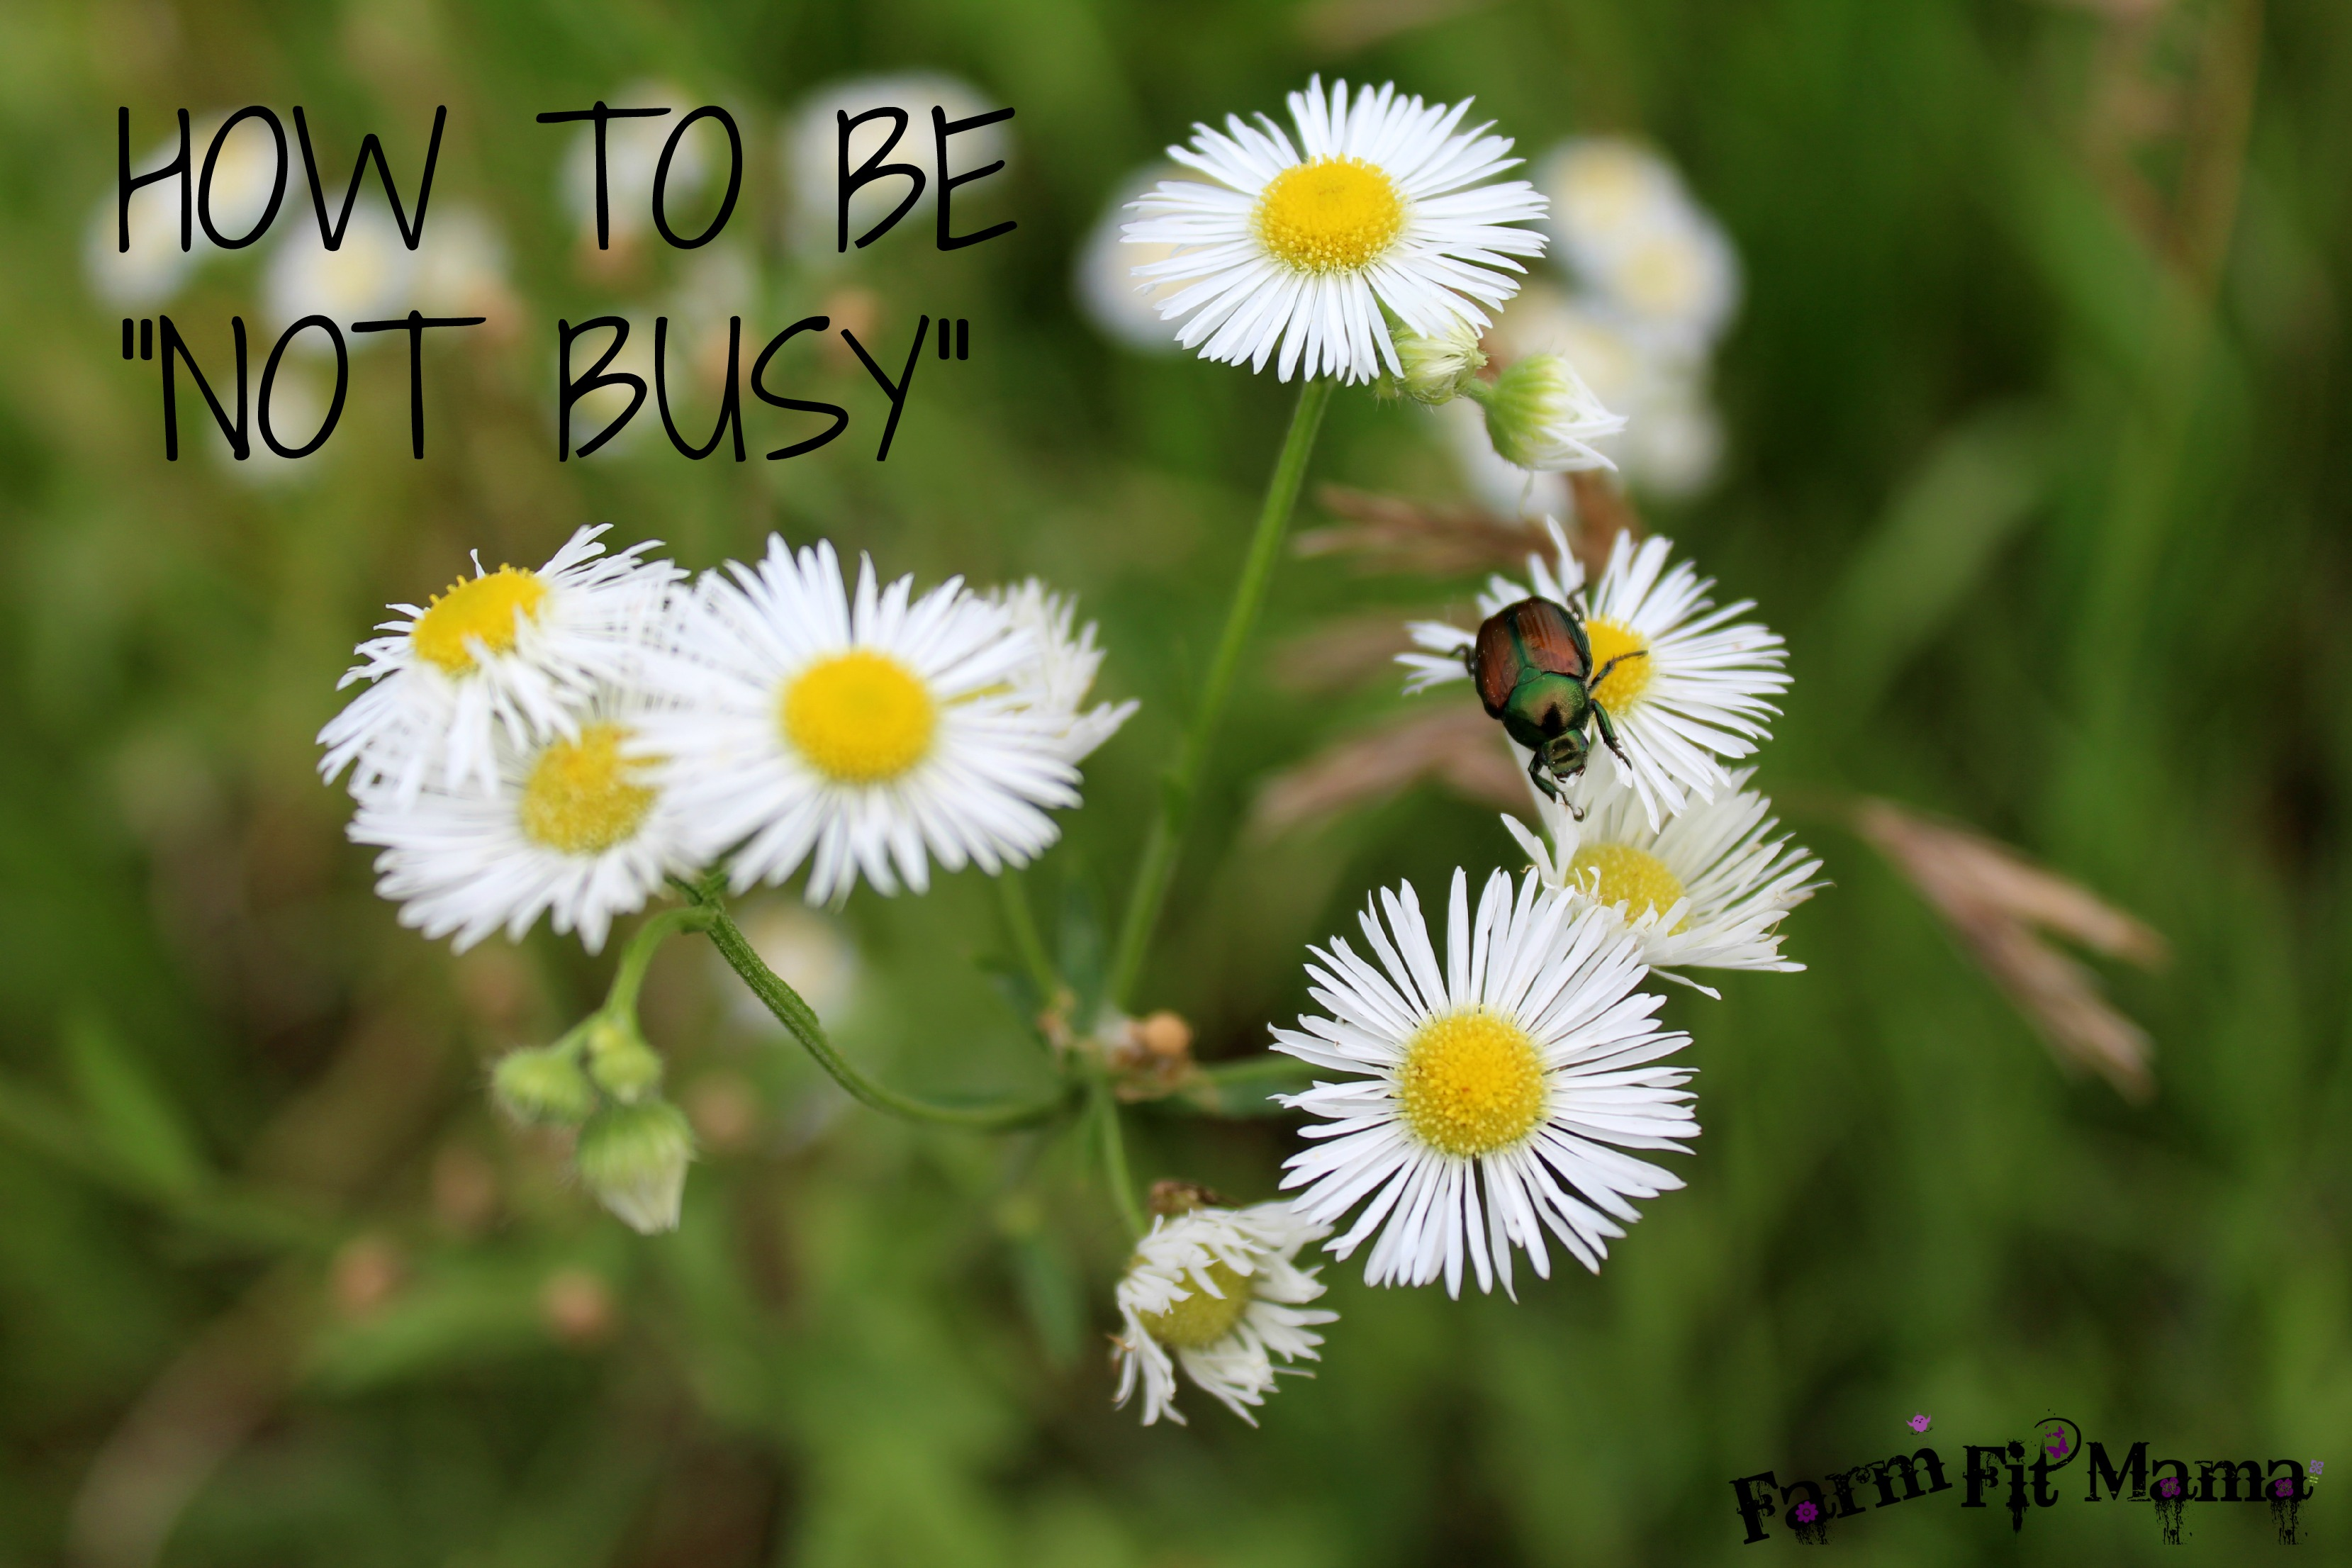 HOW TO BE NOT BUSY